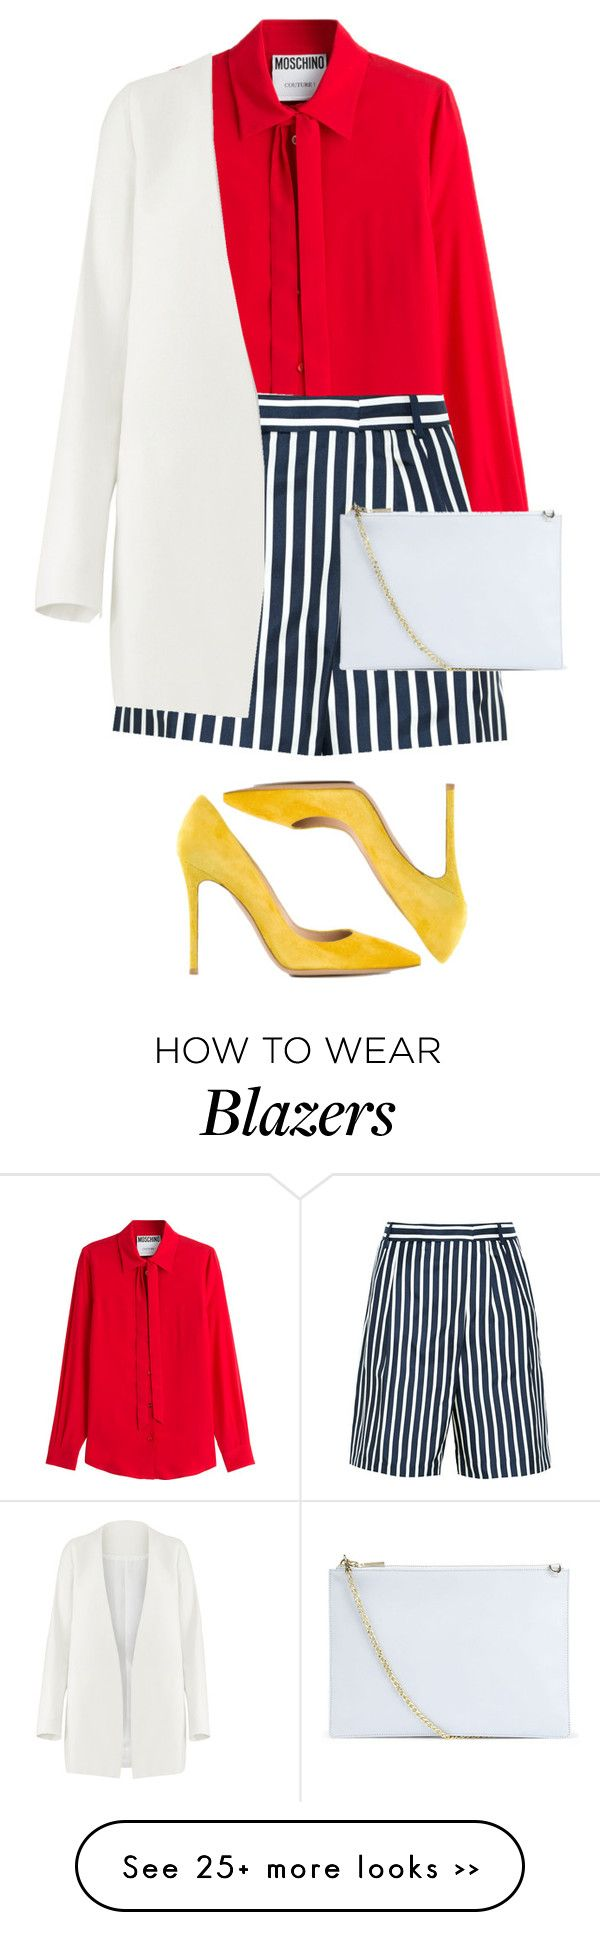 """Untitled #143"" by isabelgp on Polyvore"